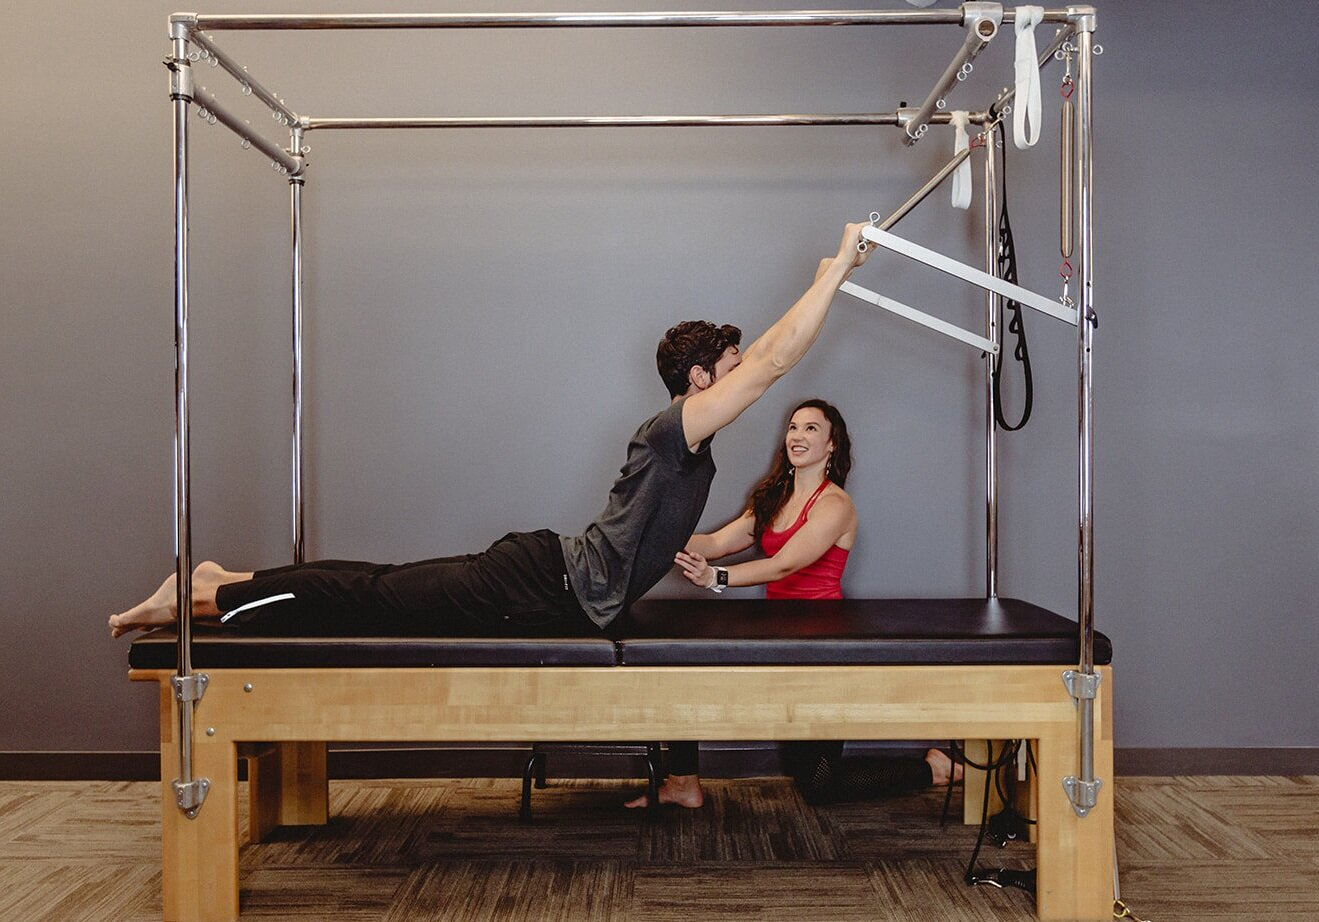 Technique Matters - PILATES-WHOLE-BODY MOVEMENT AND BREATH.Muscle Activation of San Francisco specializes in Rehabilitative and Scolio-Pilates. We apply our contemporary understanding of the biomechanics of the human body, while keeping the integrity of classical Pilates exercises.What sets us apart is our full understanding of the body as an integrated system.We effectively make changes through proven methods of neuroplastic principles and retraining faulty movement patterning.